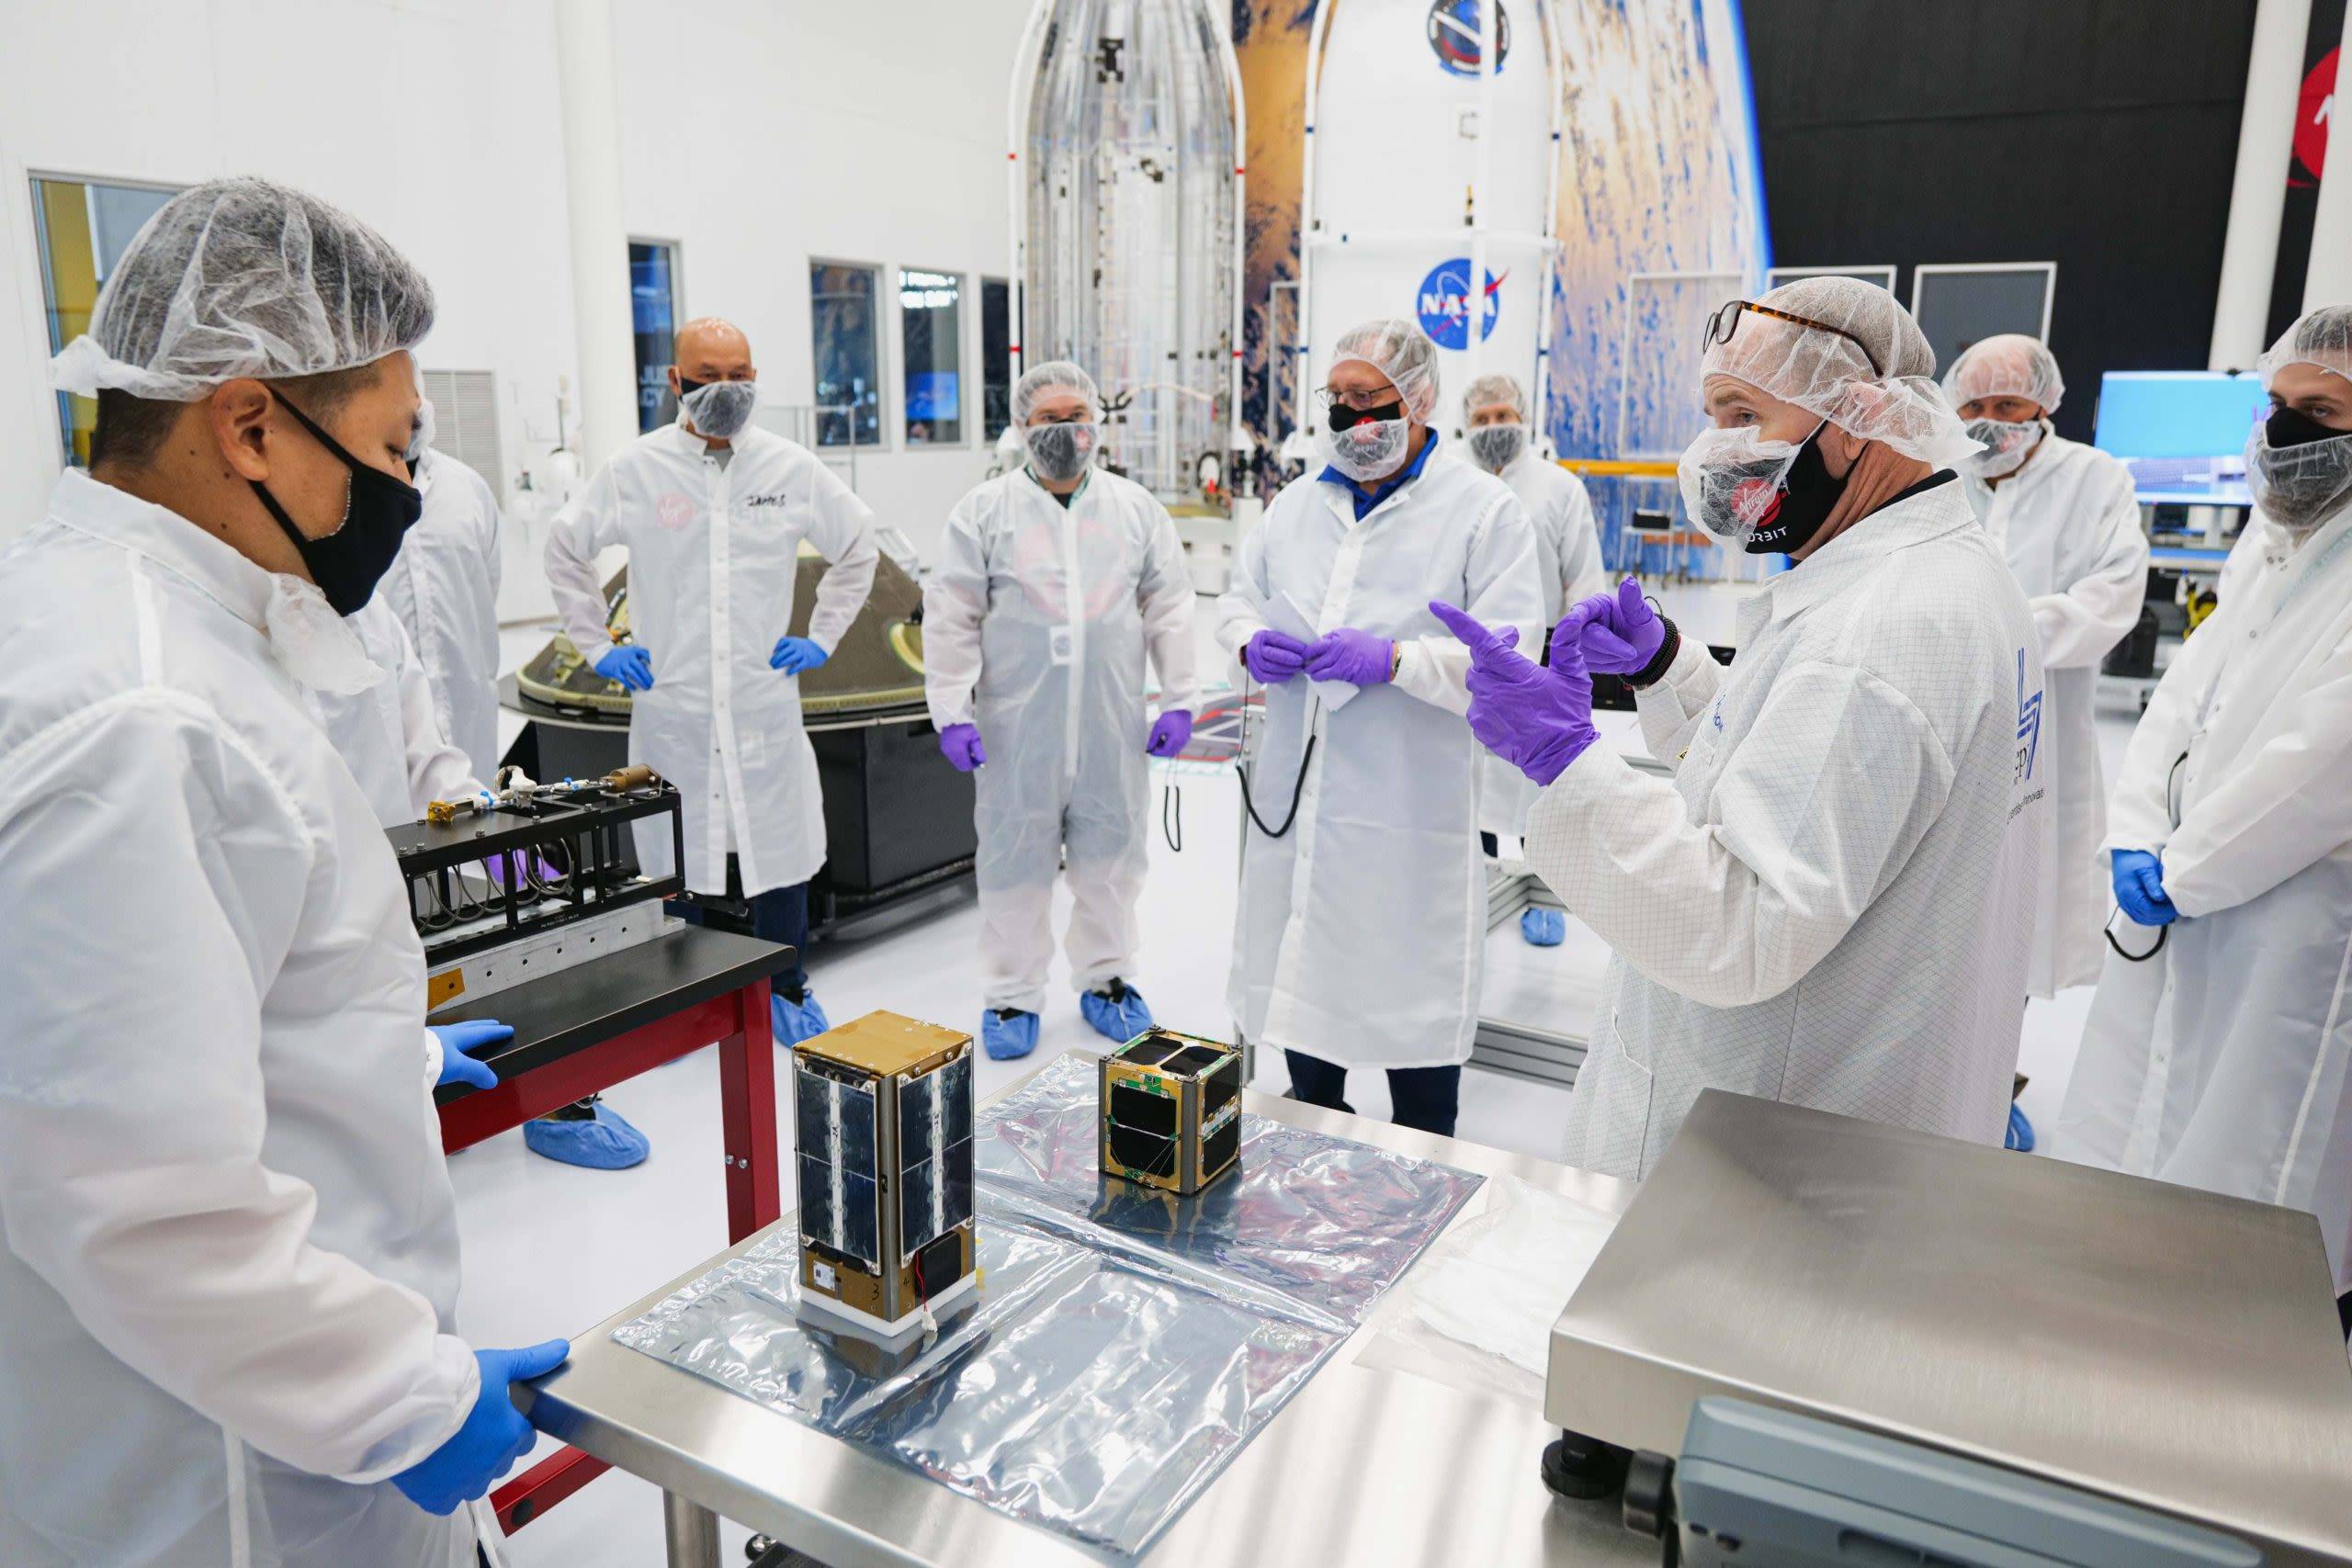 A team of Virgin Orbit technicians and payload customers conduct a final round of checkouts before integrating the spacecraft ahead of the company's Launch Demo 2 mission.